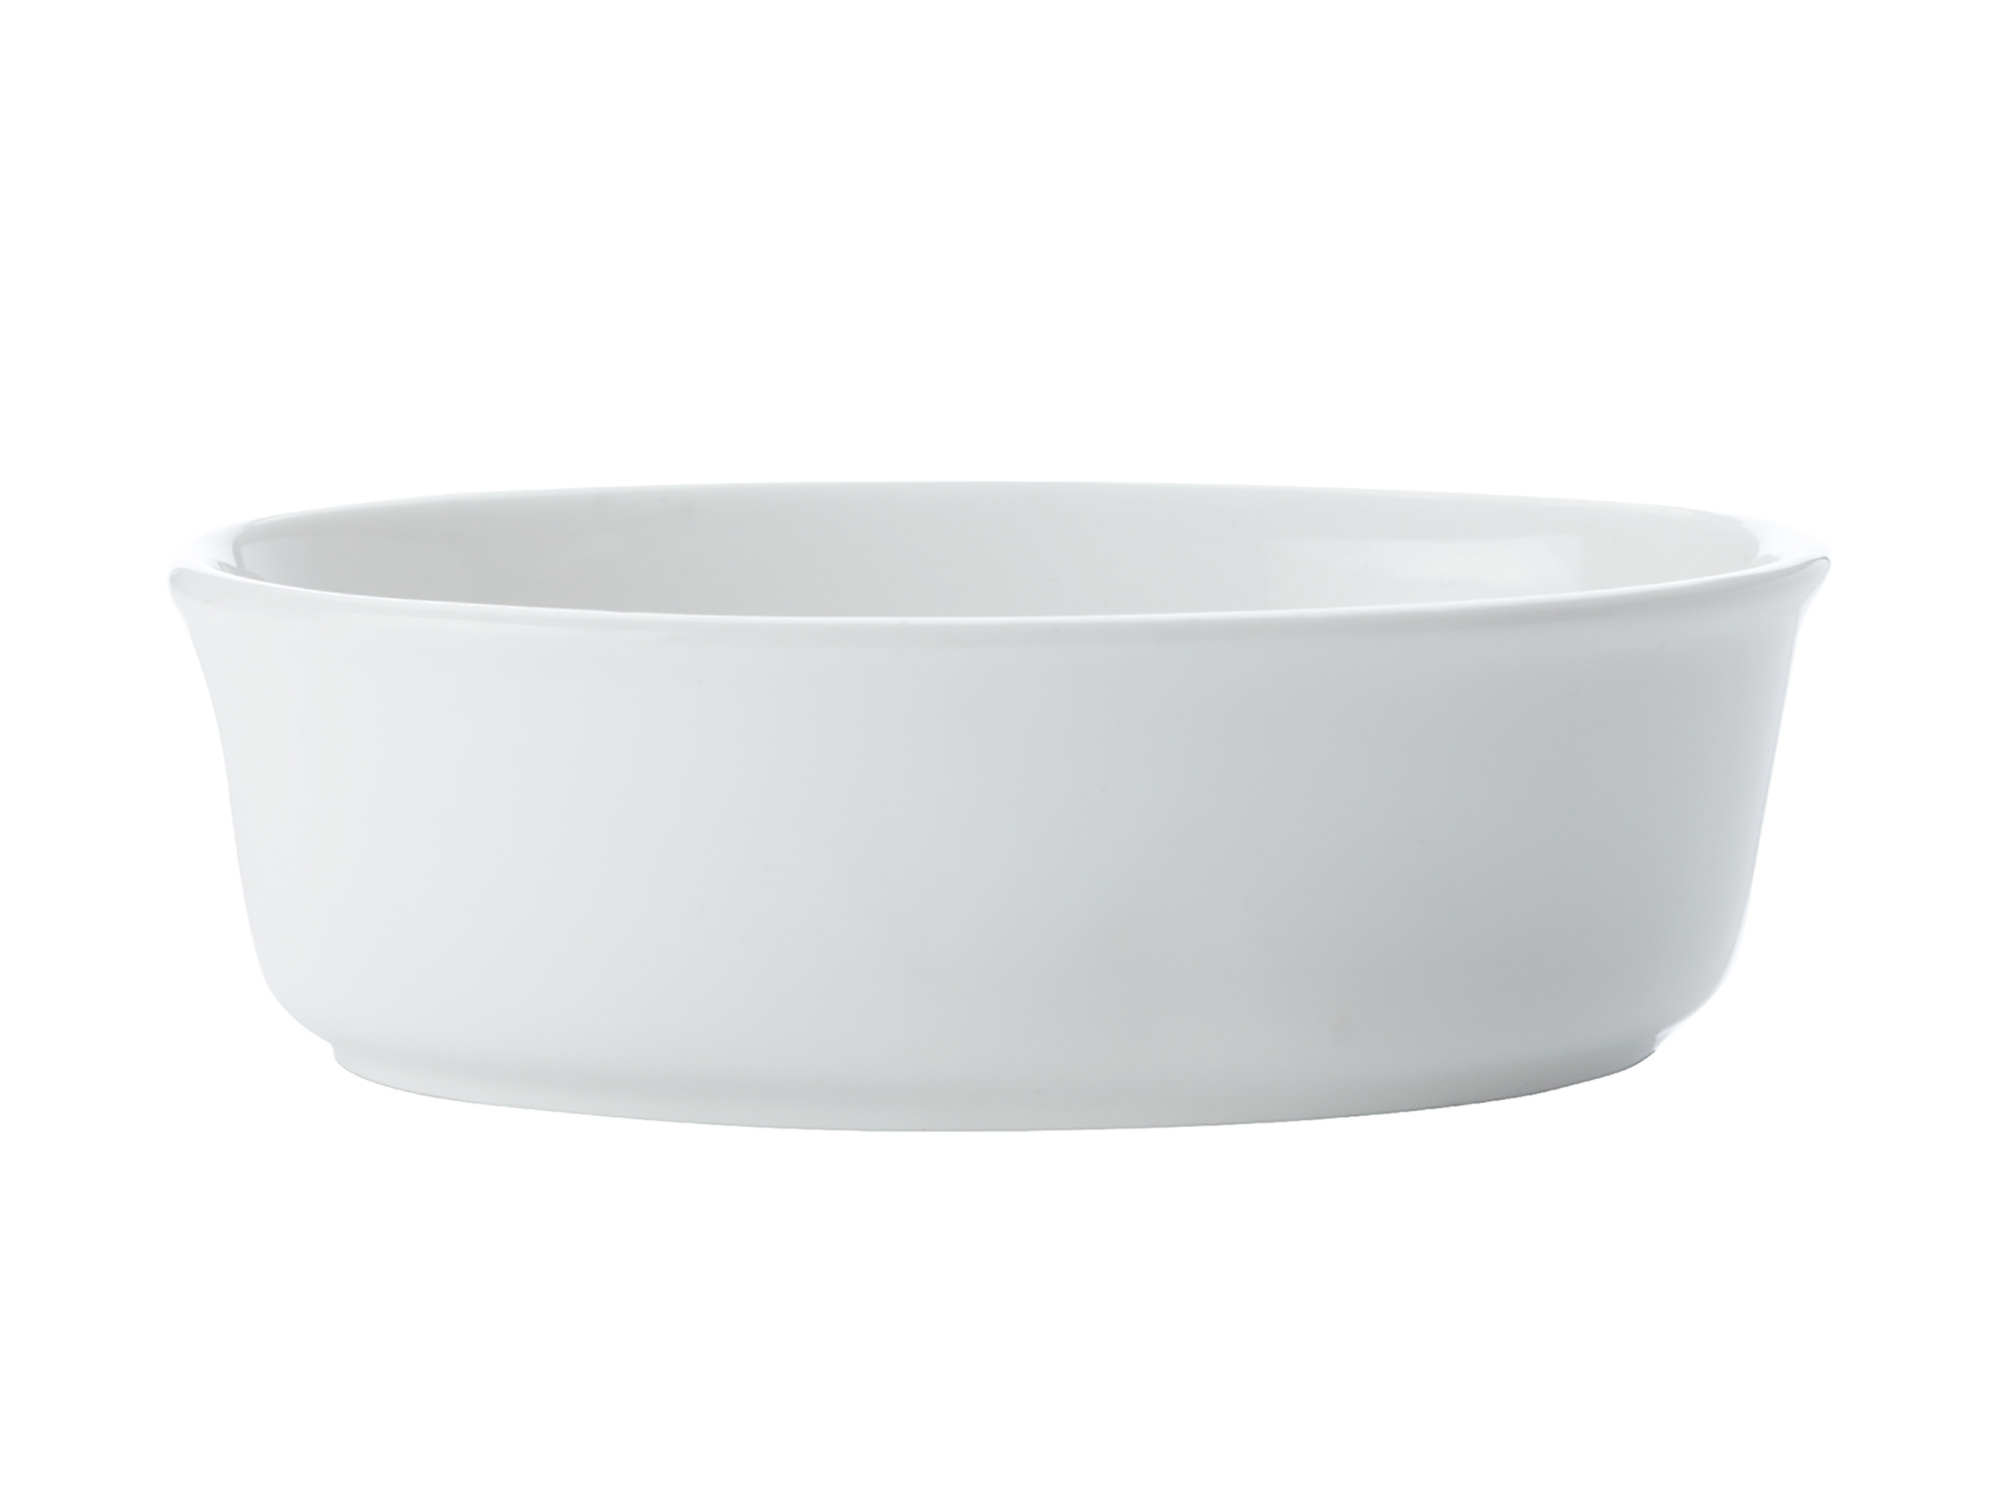 Maxwell & Williams White Basics 18Cm Pie Dish